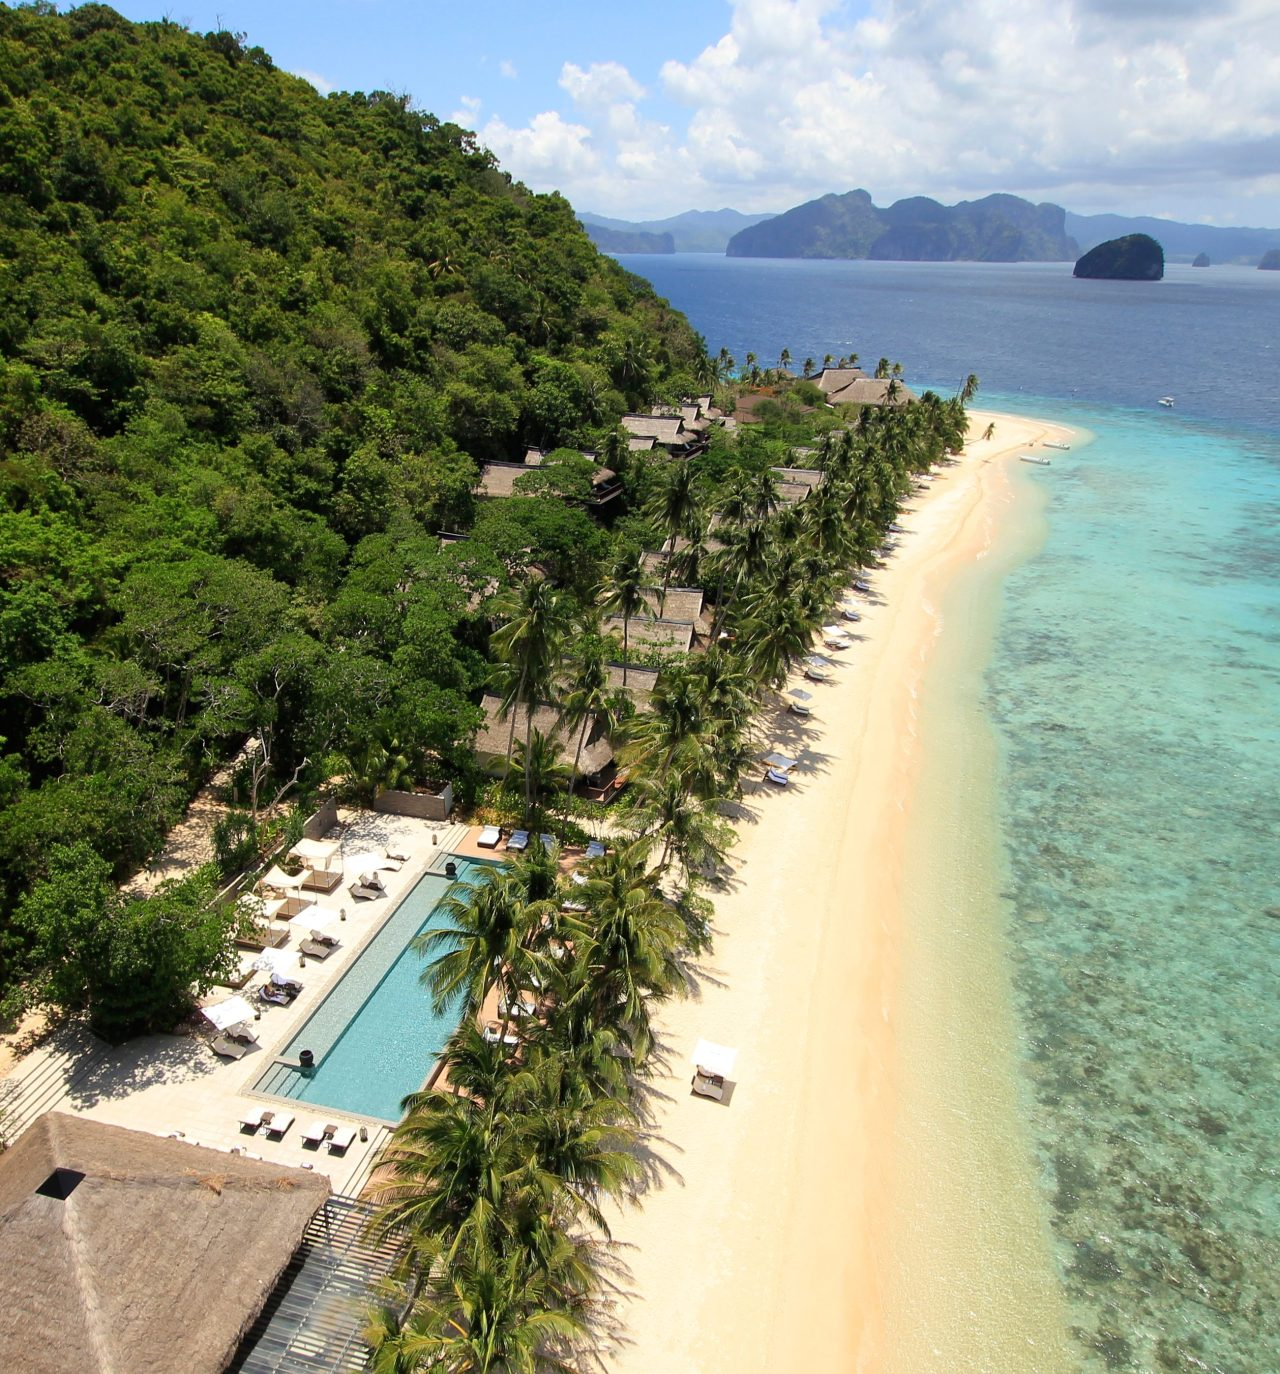 El Nido's 'Island of the Sun'